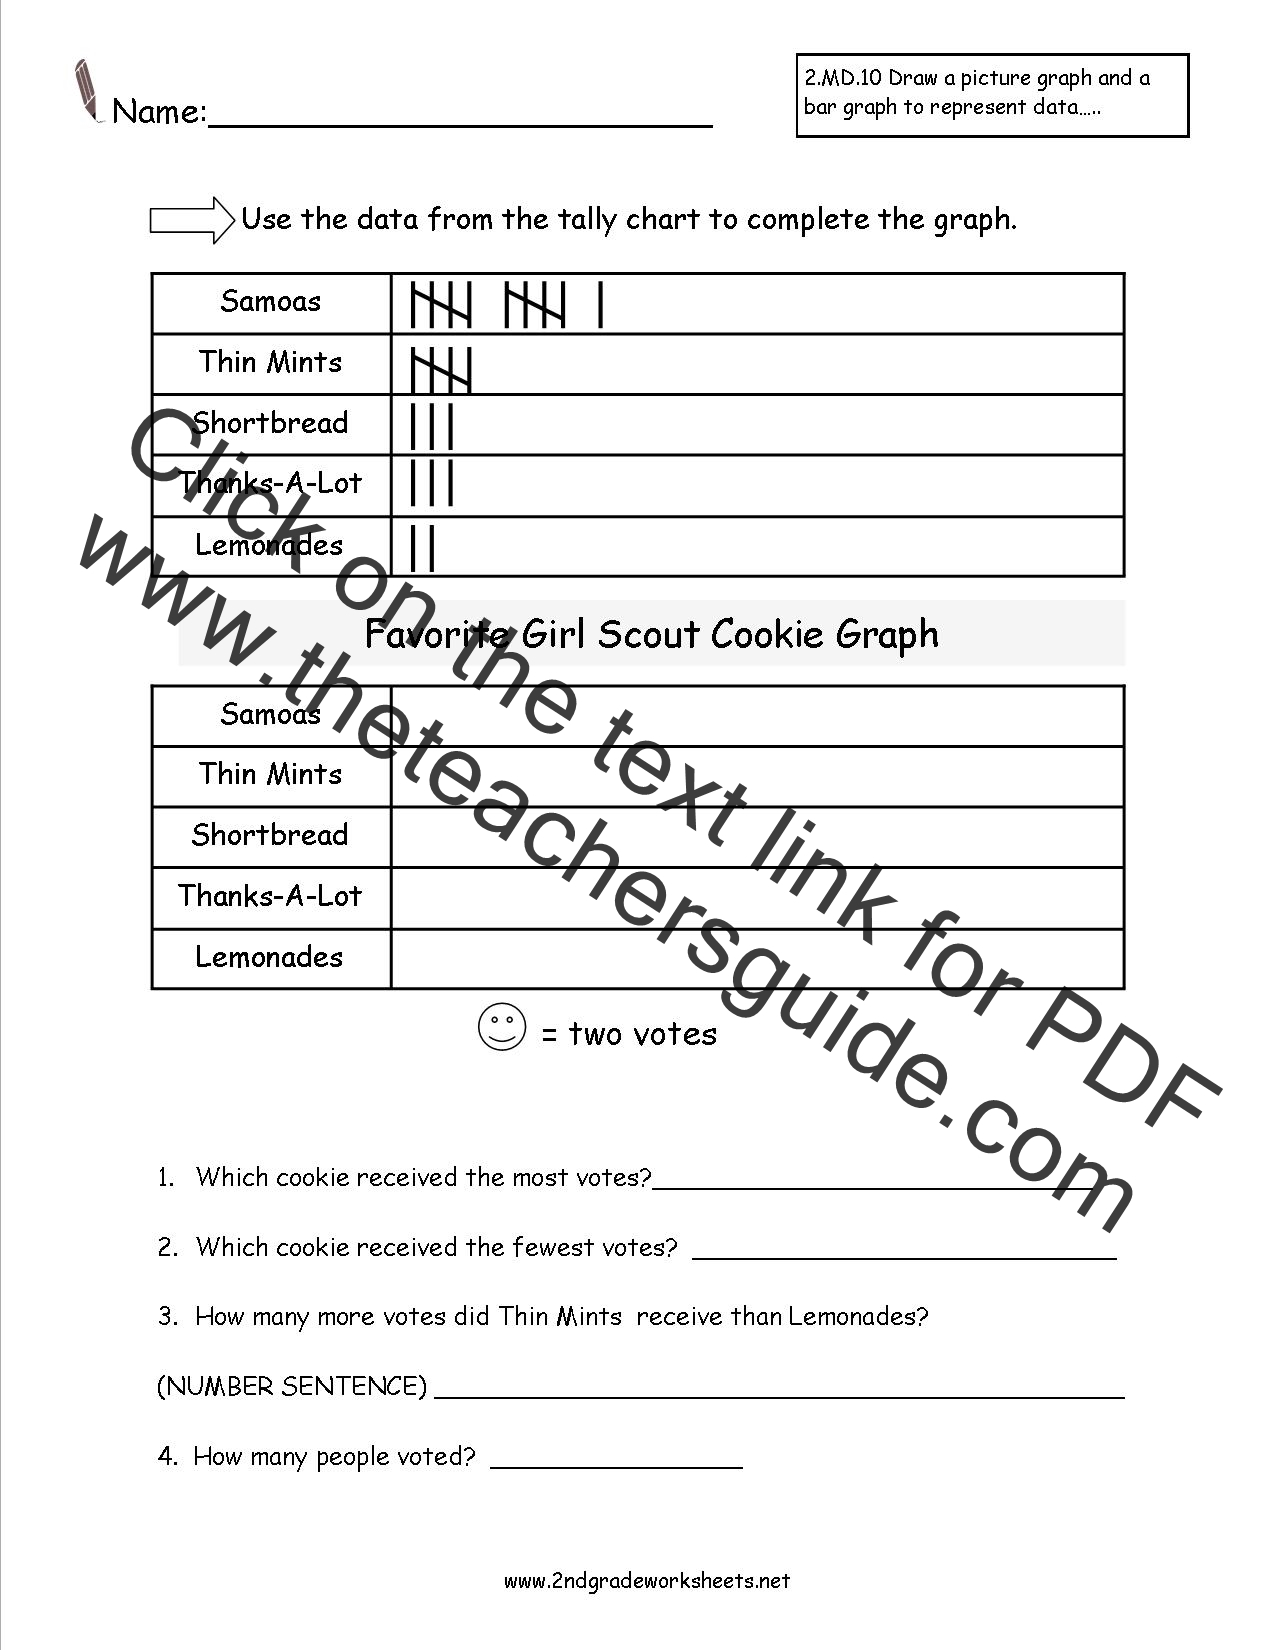 Printables Pictograph Worksheets 3rd Grade second grade reading and creating pictograph worksheets favorite girl scout cookie pictograph